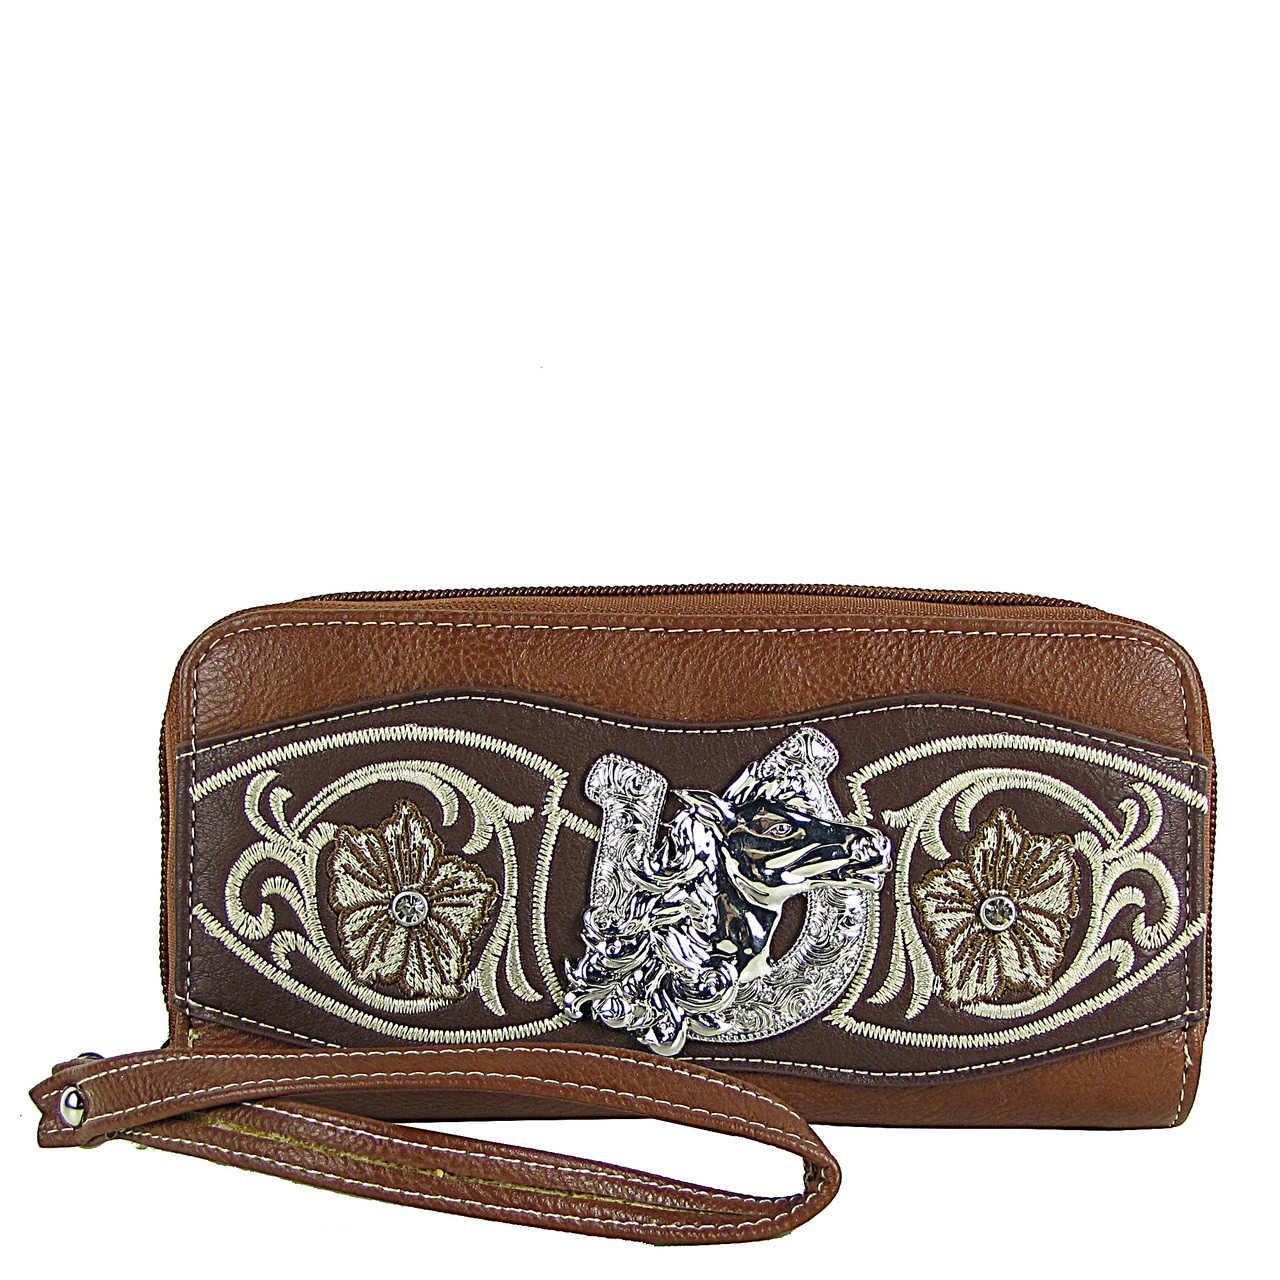 BROWN HORSESHOE WITH FLOWER LOOK ***(DOUBLE ZIPPER)*** WALLET CB3-1205BRN